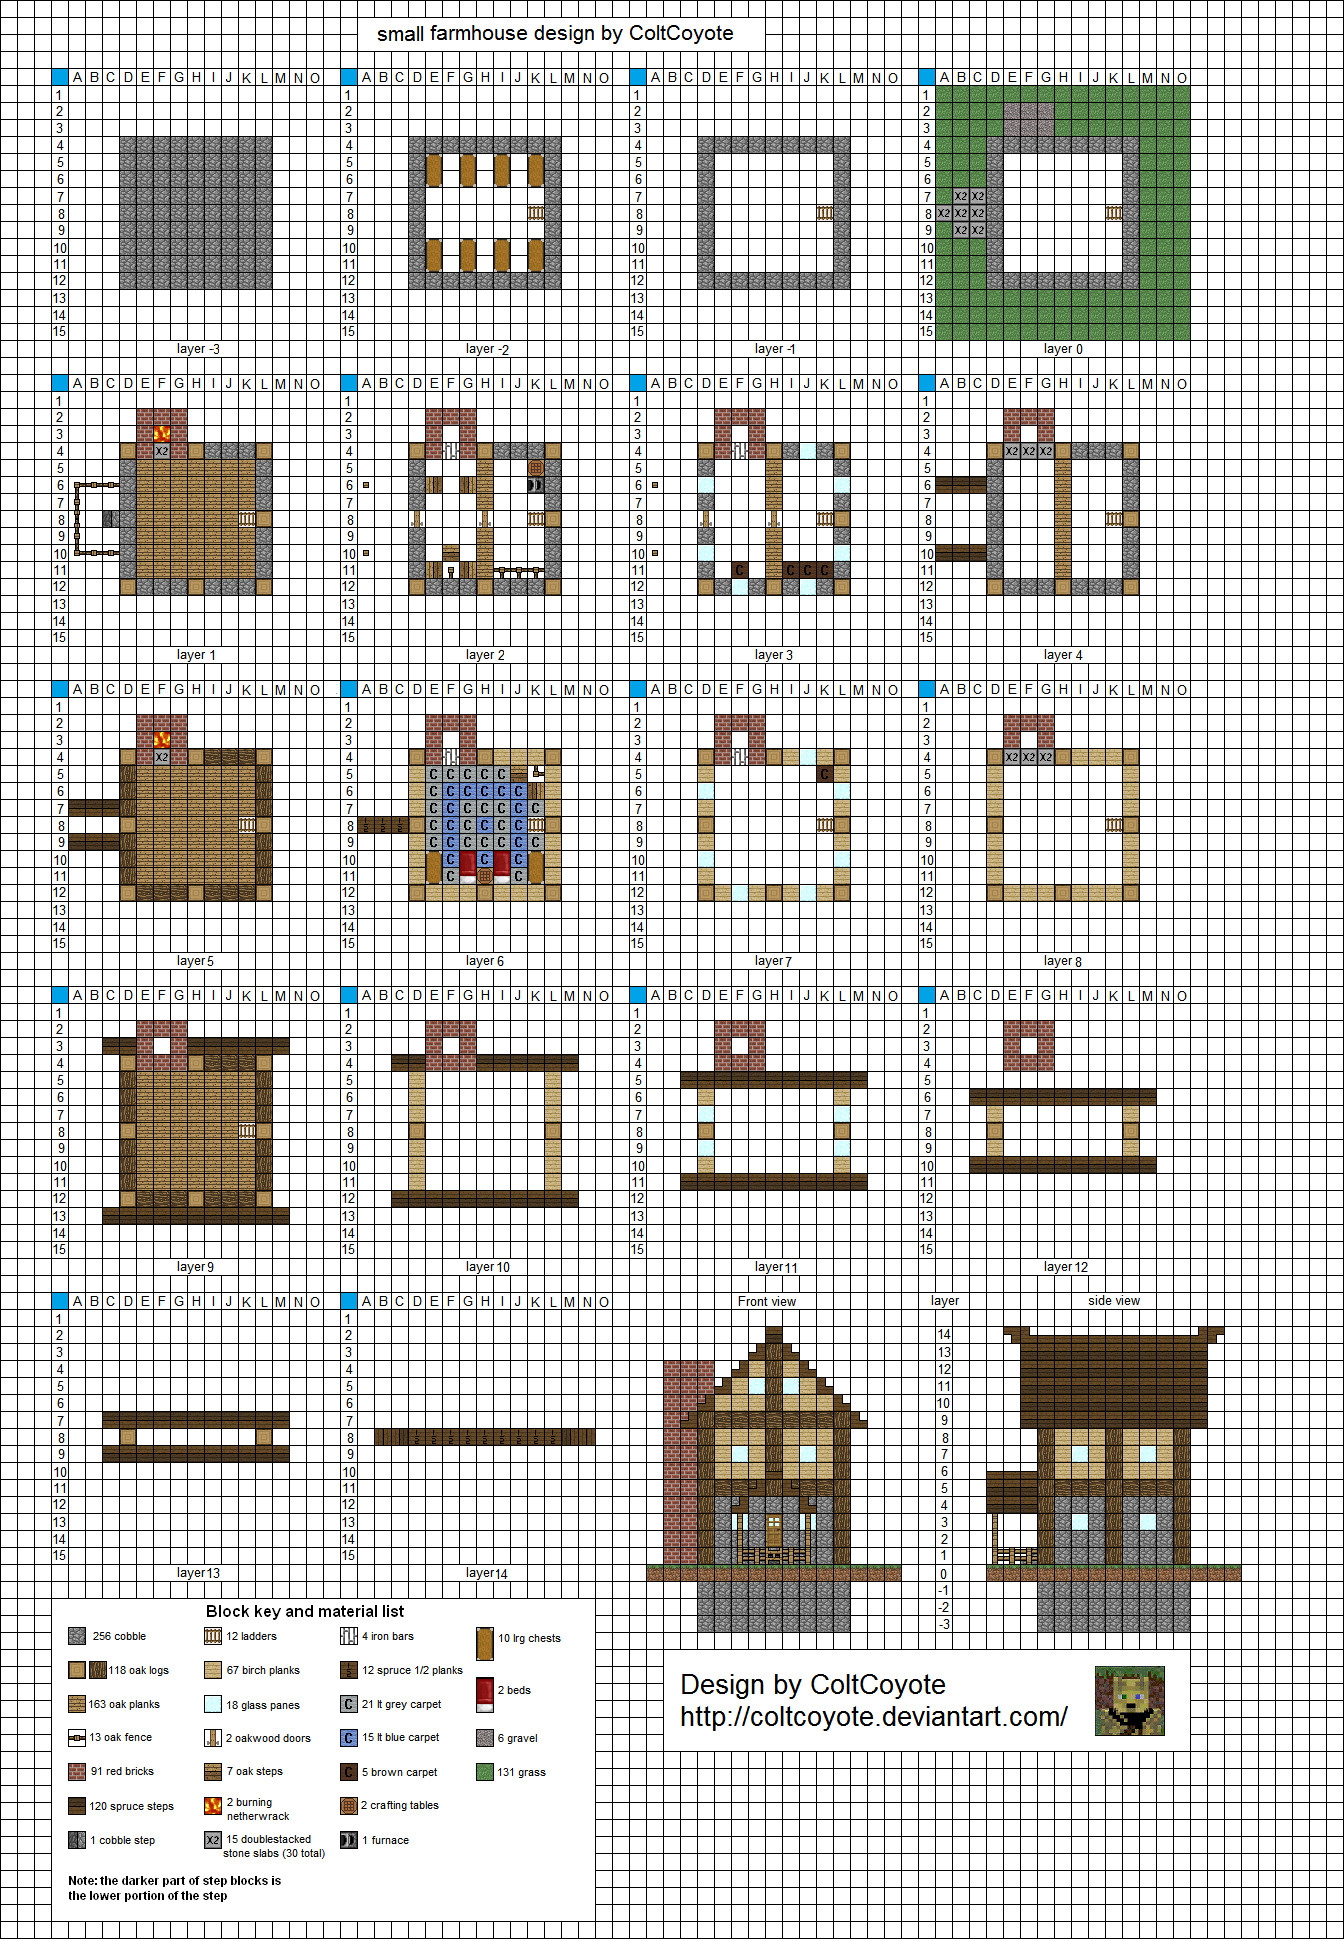 Prototype floorplan layout mk3 wip by coltcoyote on deviantart for Home blueprint maker